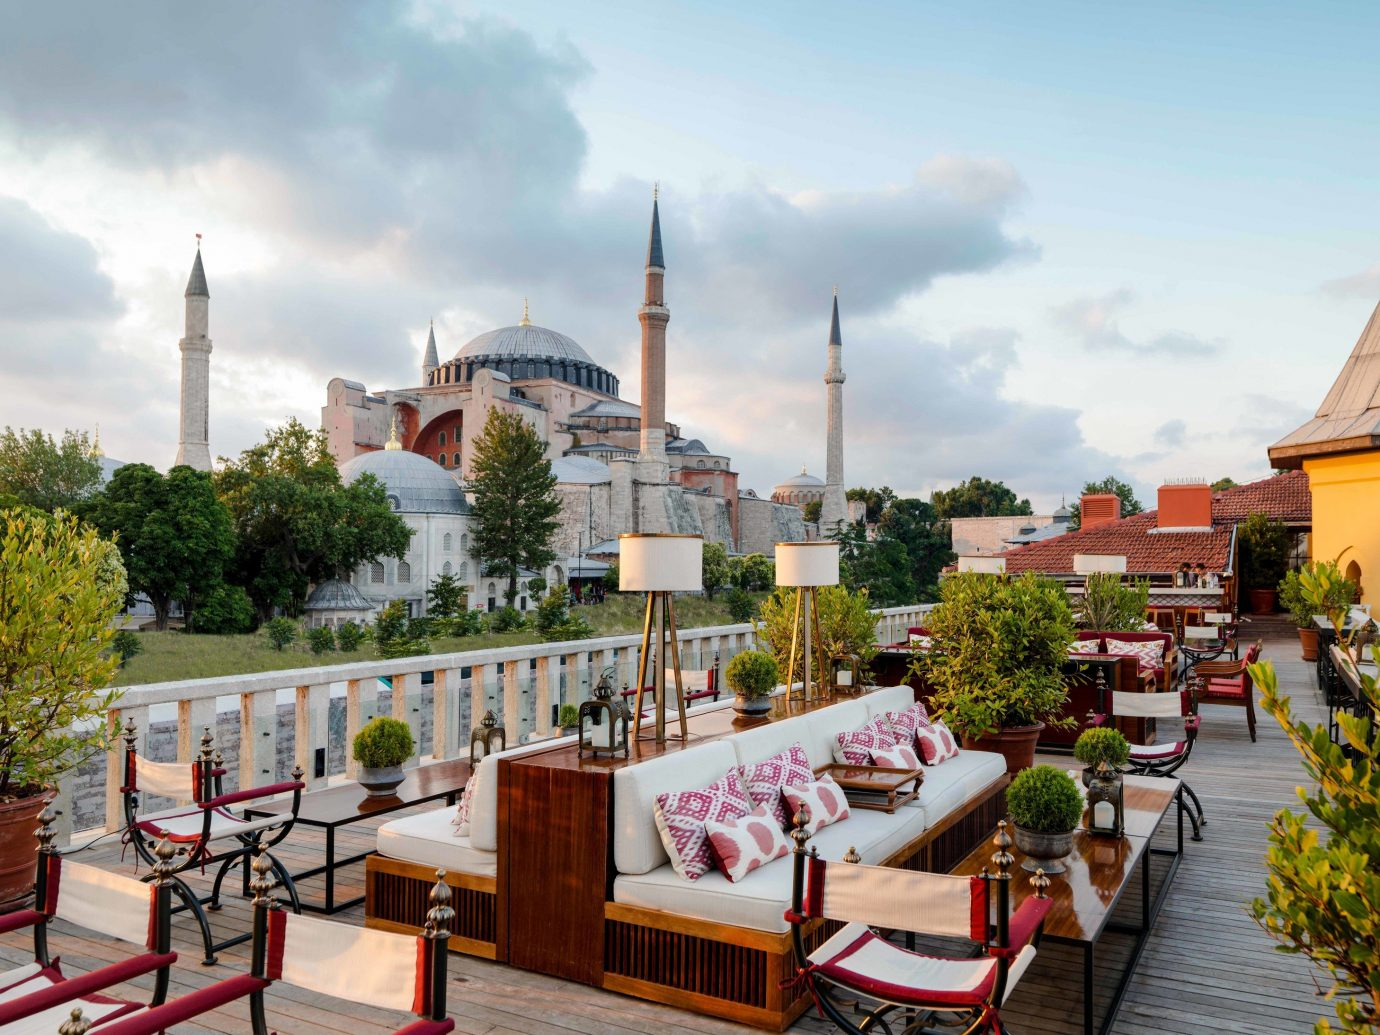 Boutique Hotels Hotels Luxury Travel sky outdoor real estate outdoor structure roof City recreation several